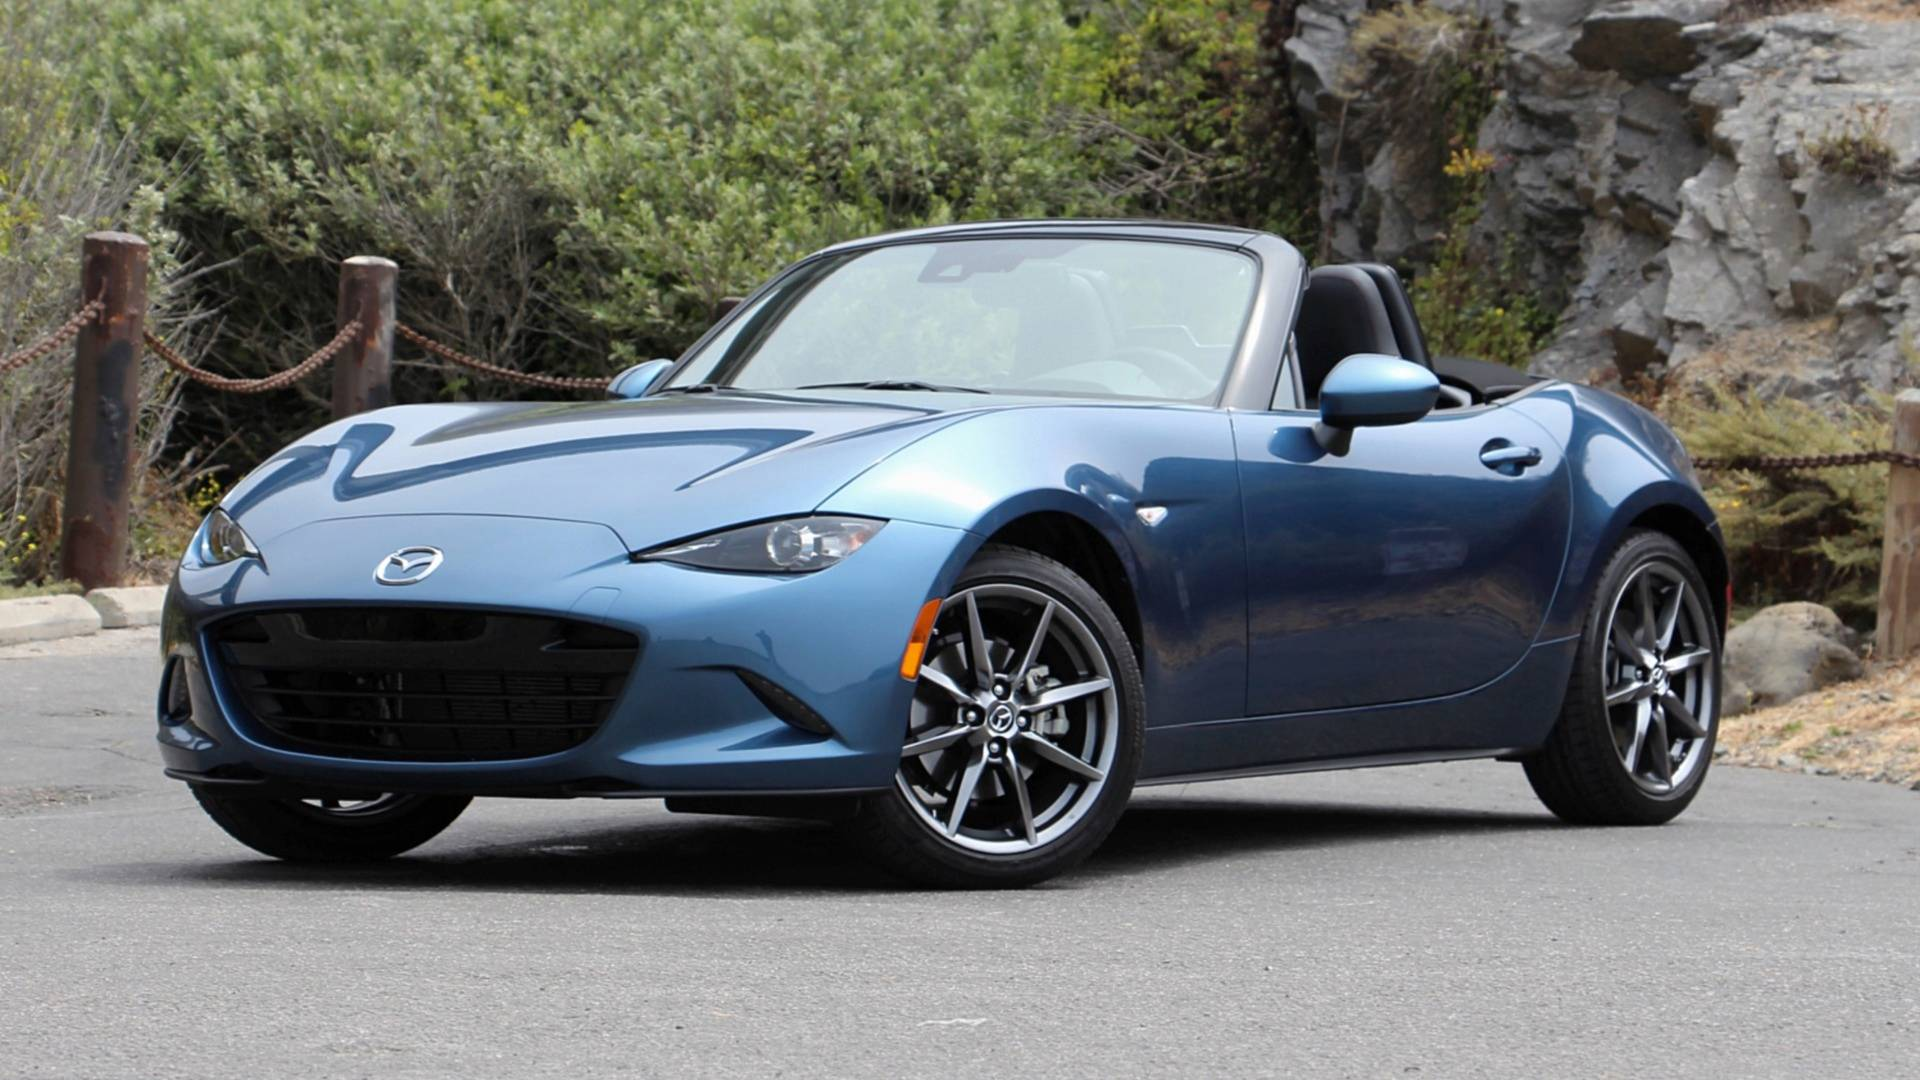 39 The Best 2019 Mazda Mx 5 Miata Price and Release date